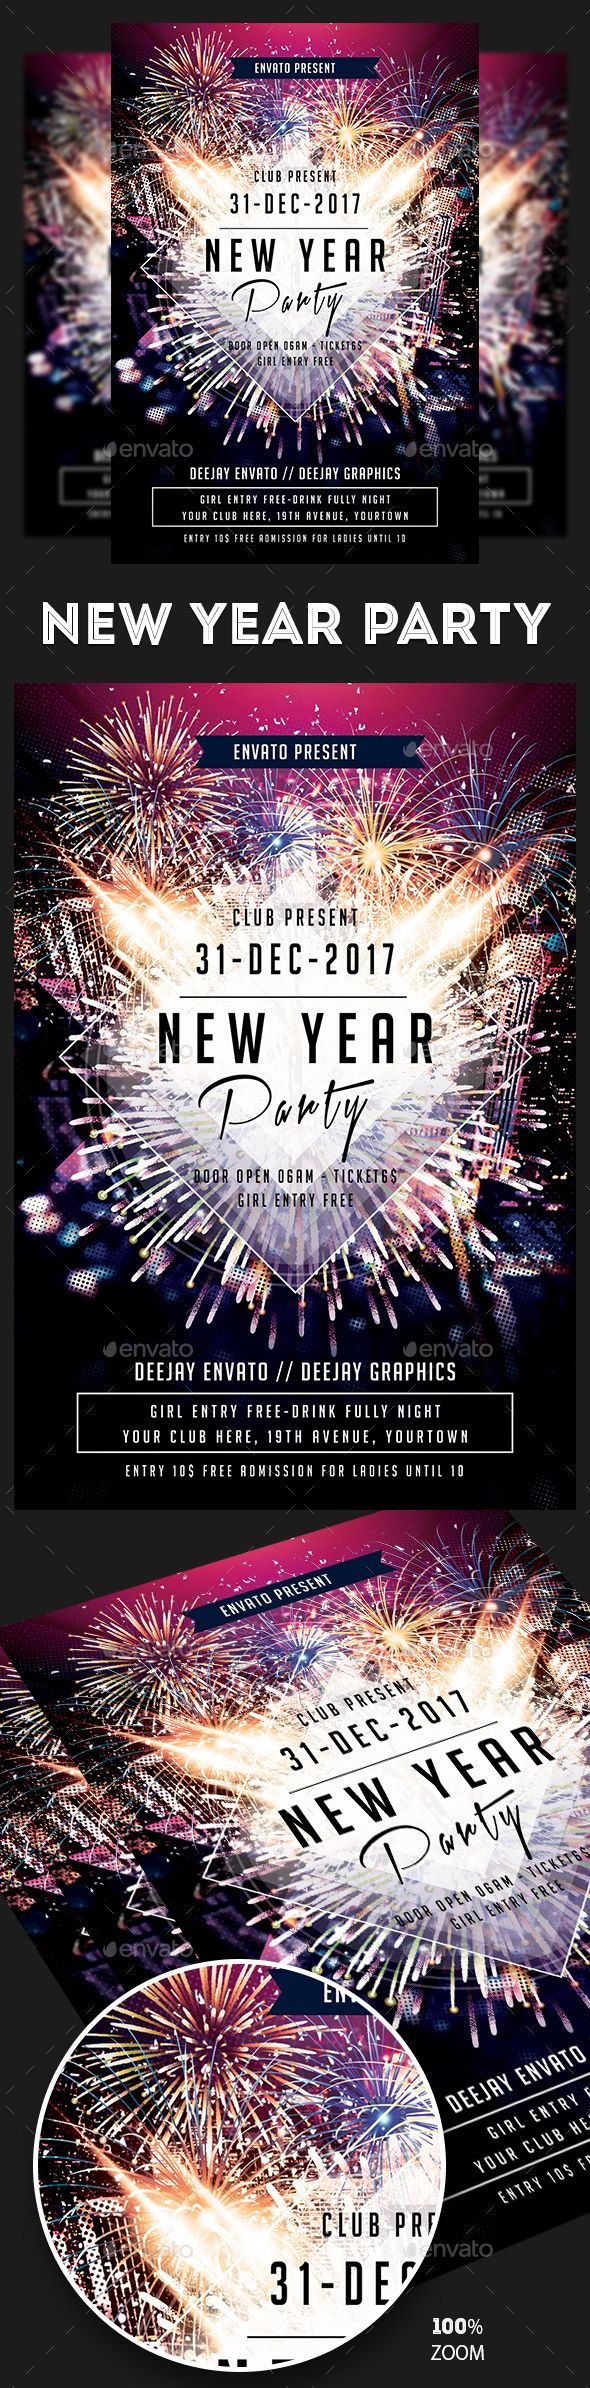 New Year Party Flyer — Photoshop PSD #party nye 2018 #new year bash • Available here → https://graphicriver.net/item/new-year-party-flyer/19055698?ref=pxcr